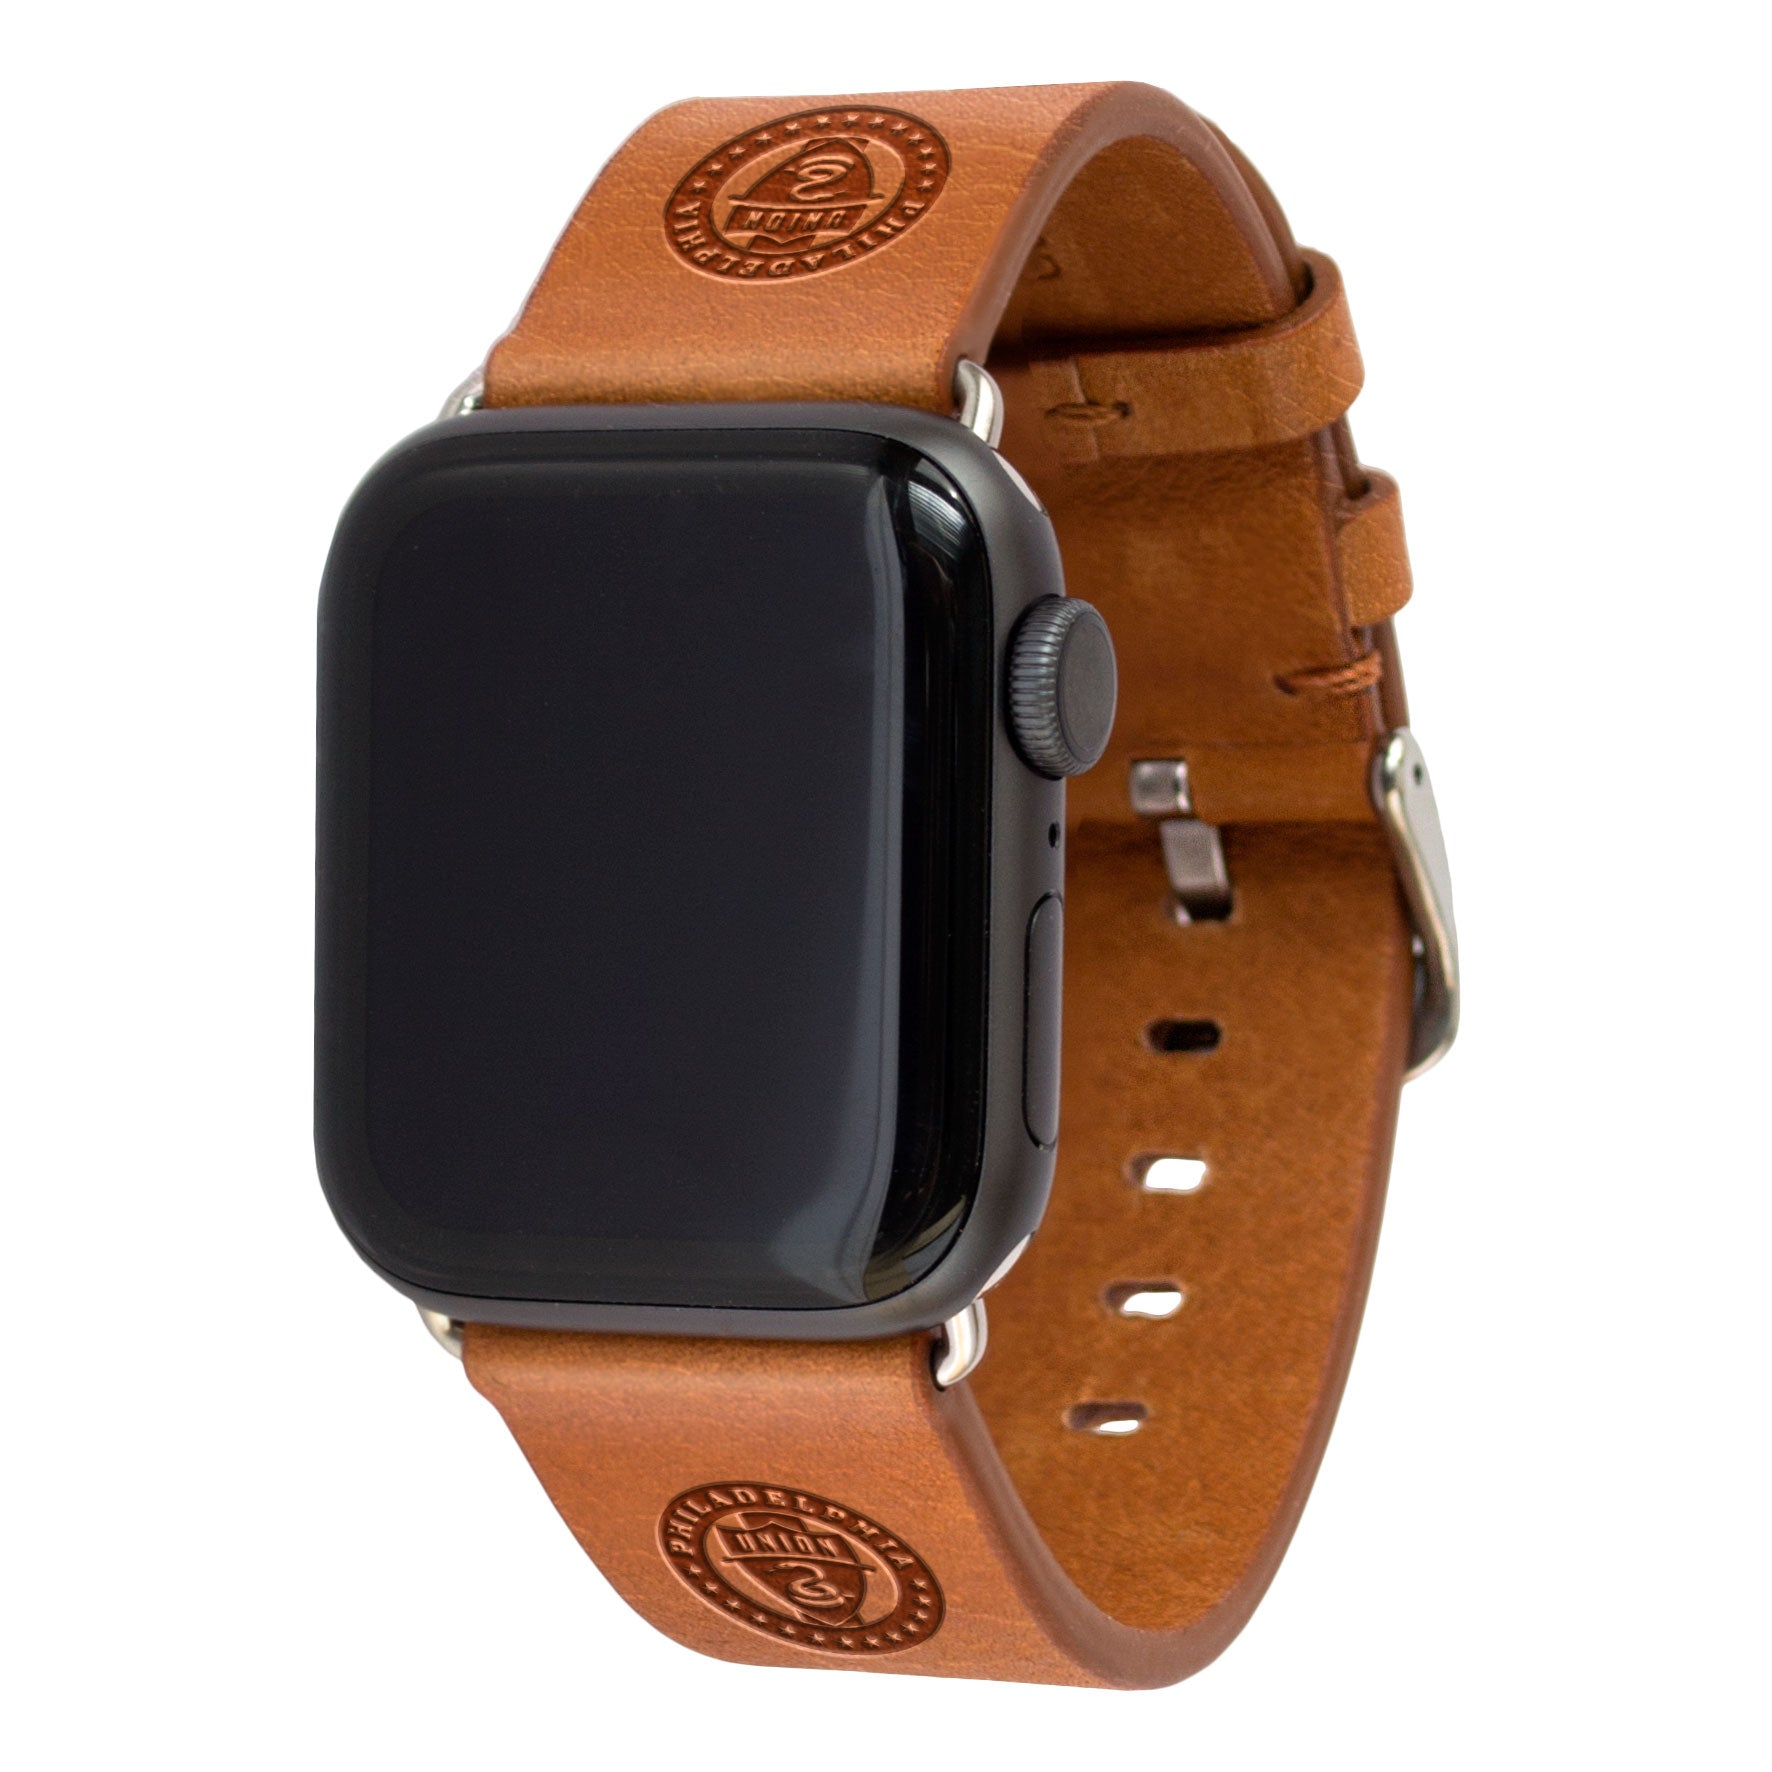 Philadelphia Union Leather Apple Watch Band - AffinityBands